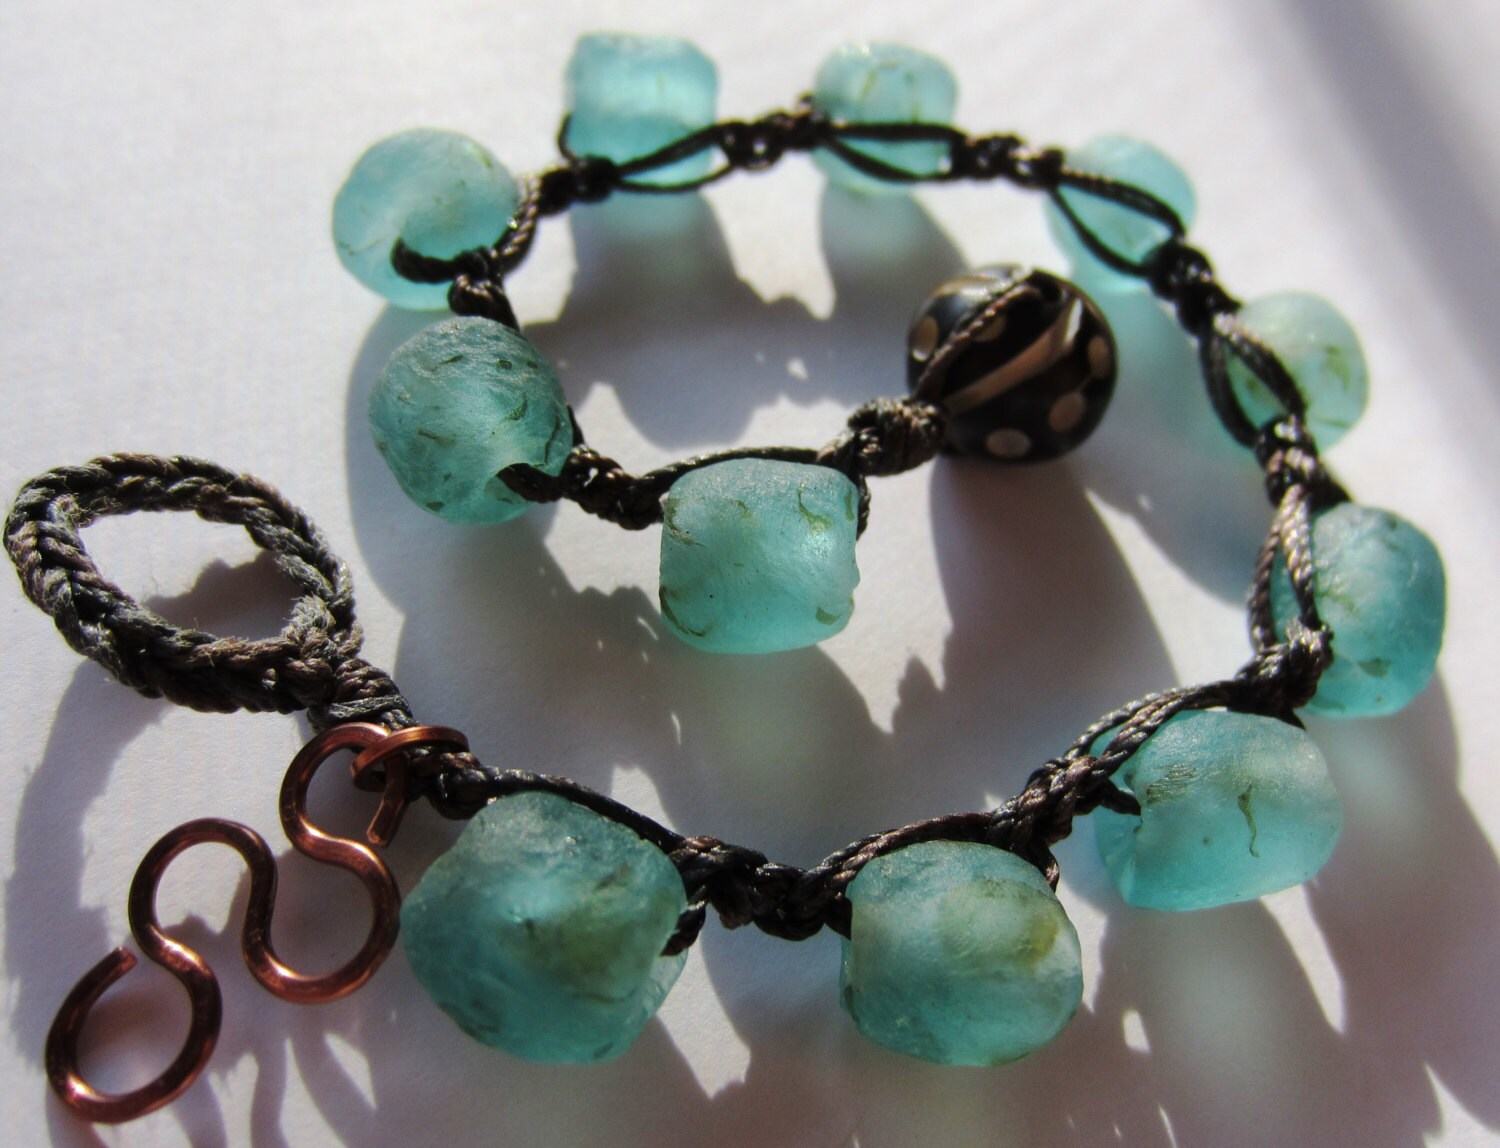 African Recycled Glass Bracelet - Crochet Artisan Jewelry - Turquoise Upcycled Glass beads, Elegant, Tribal and Eco Friendly - GroundedJewelry